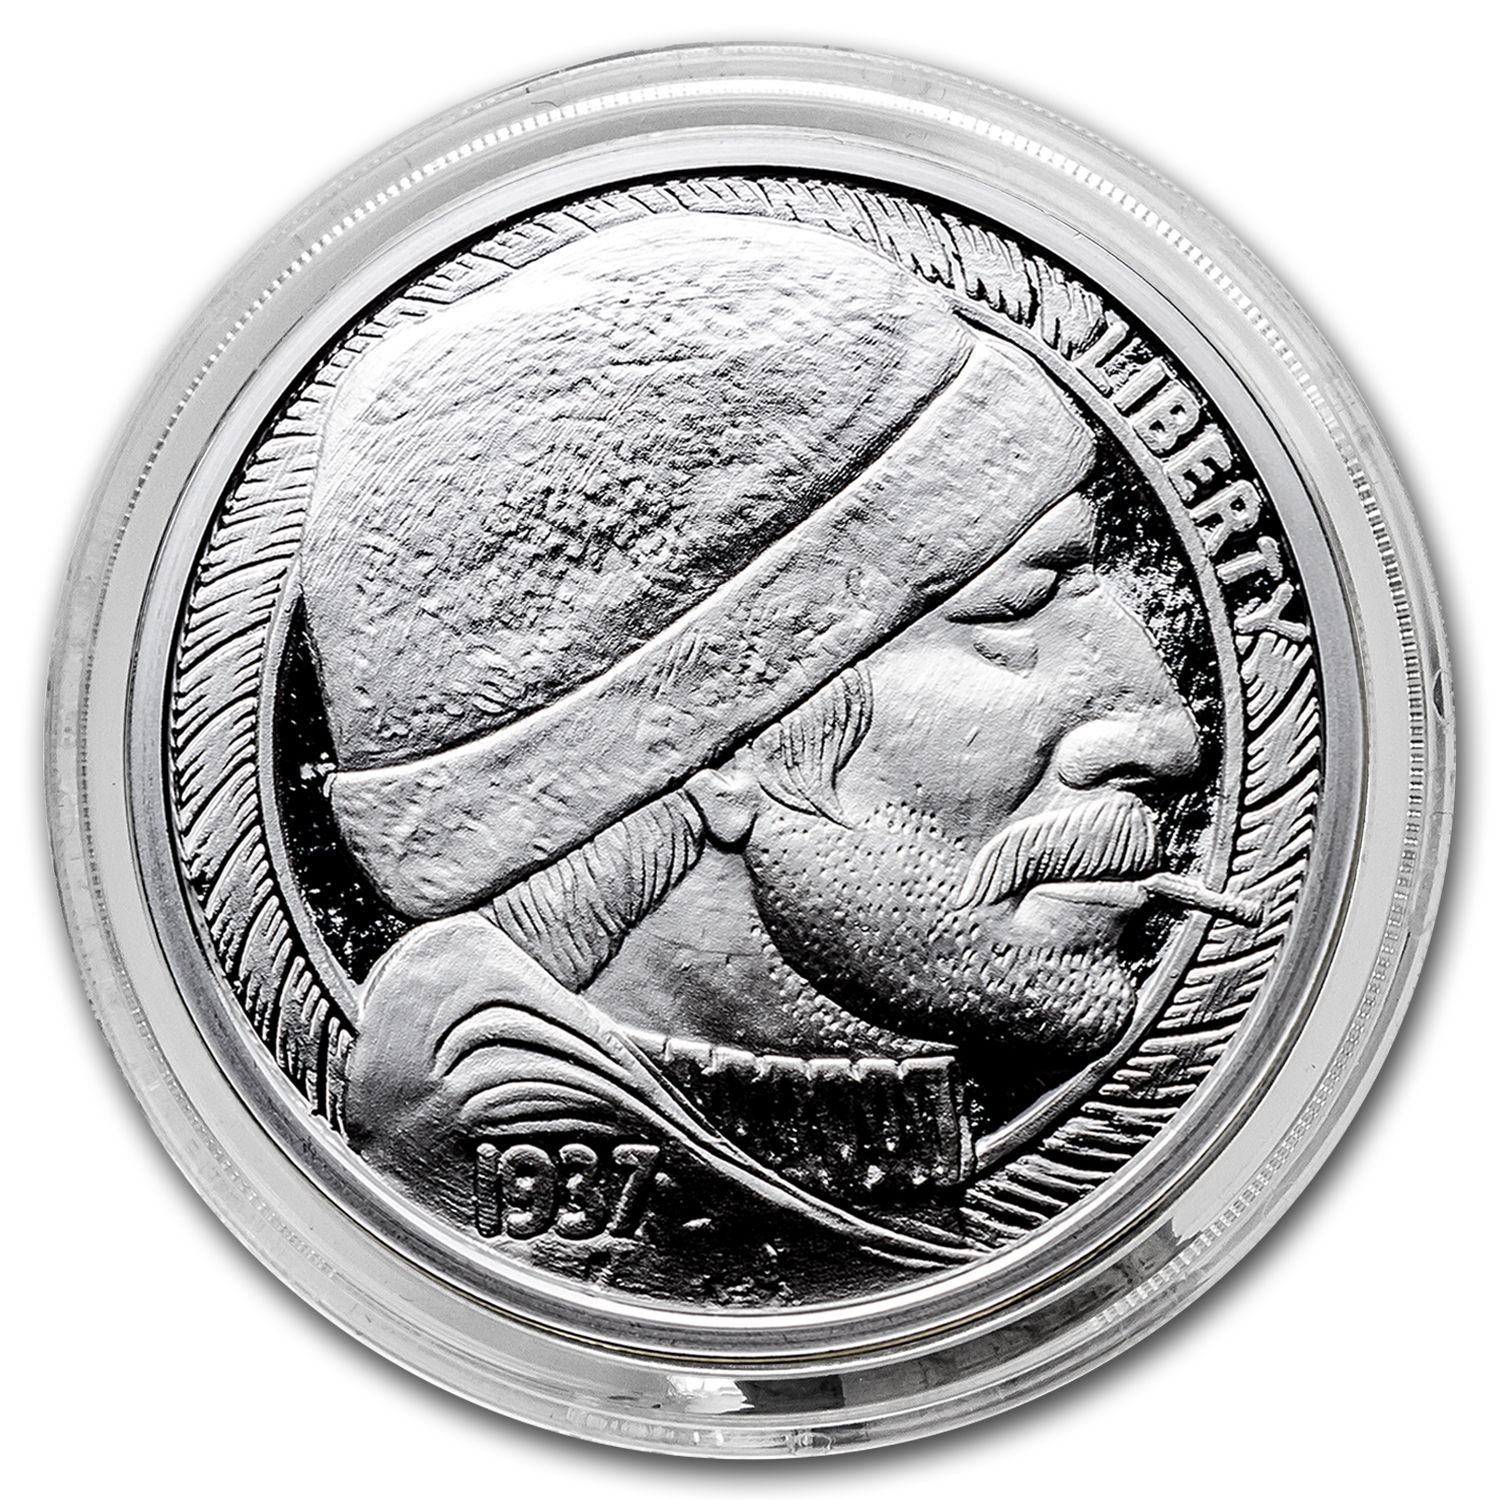 1 oz Silver Round - Hobo Nickel Replica (The Fisherman)